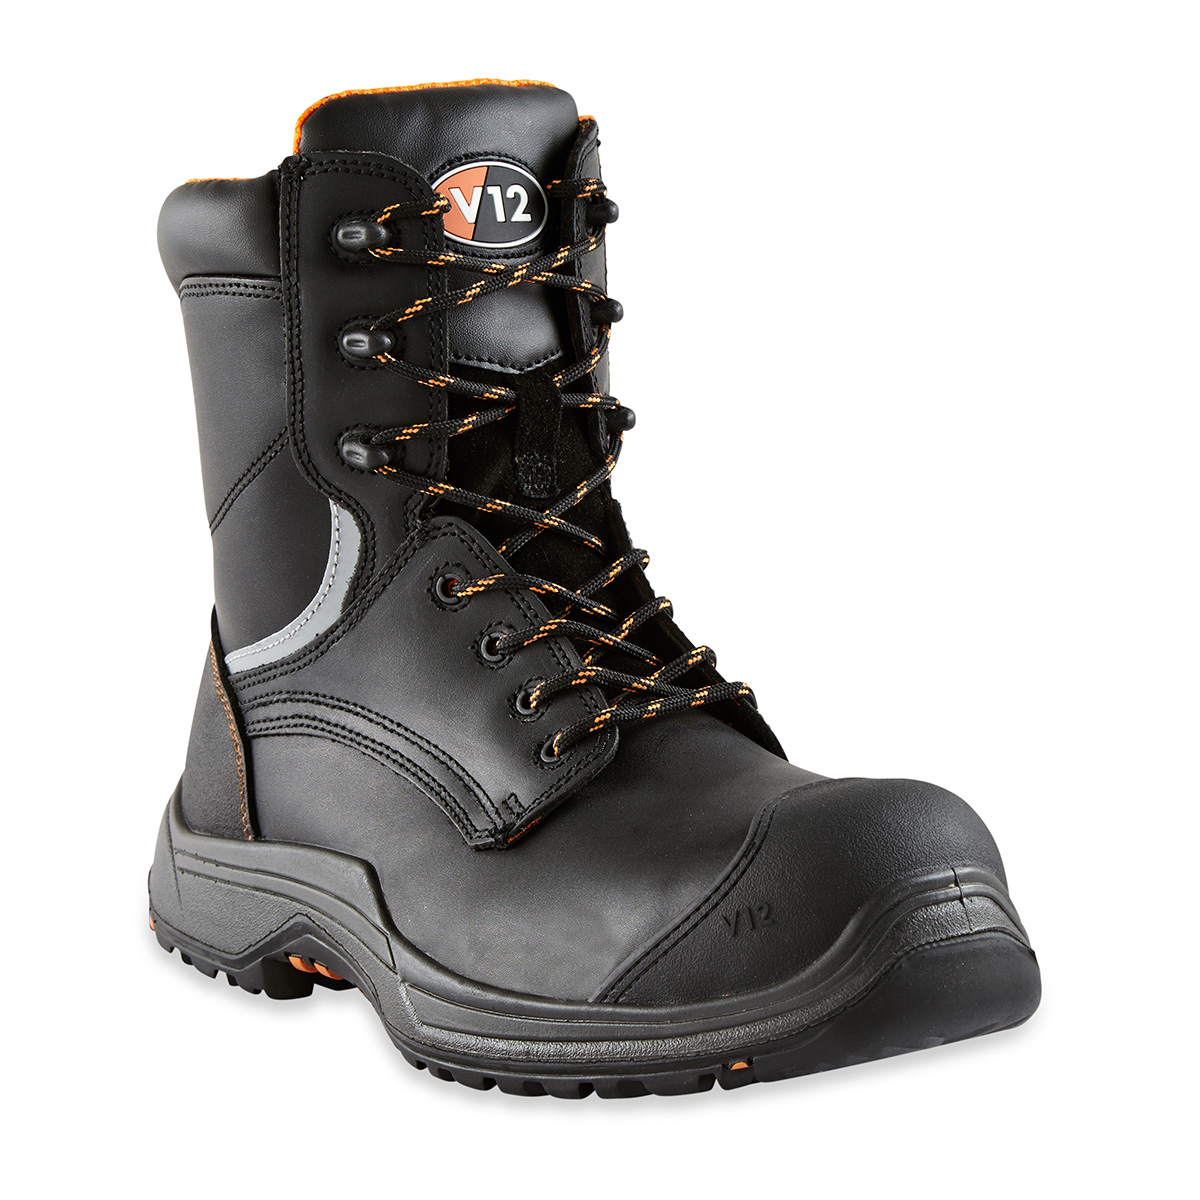 V12 Avenger High Leg Safety BootV12 Avenger High Leg Safety Boot